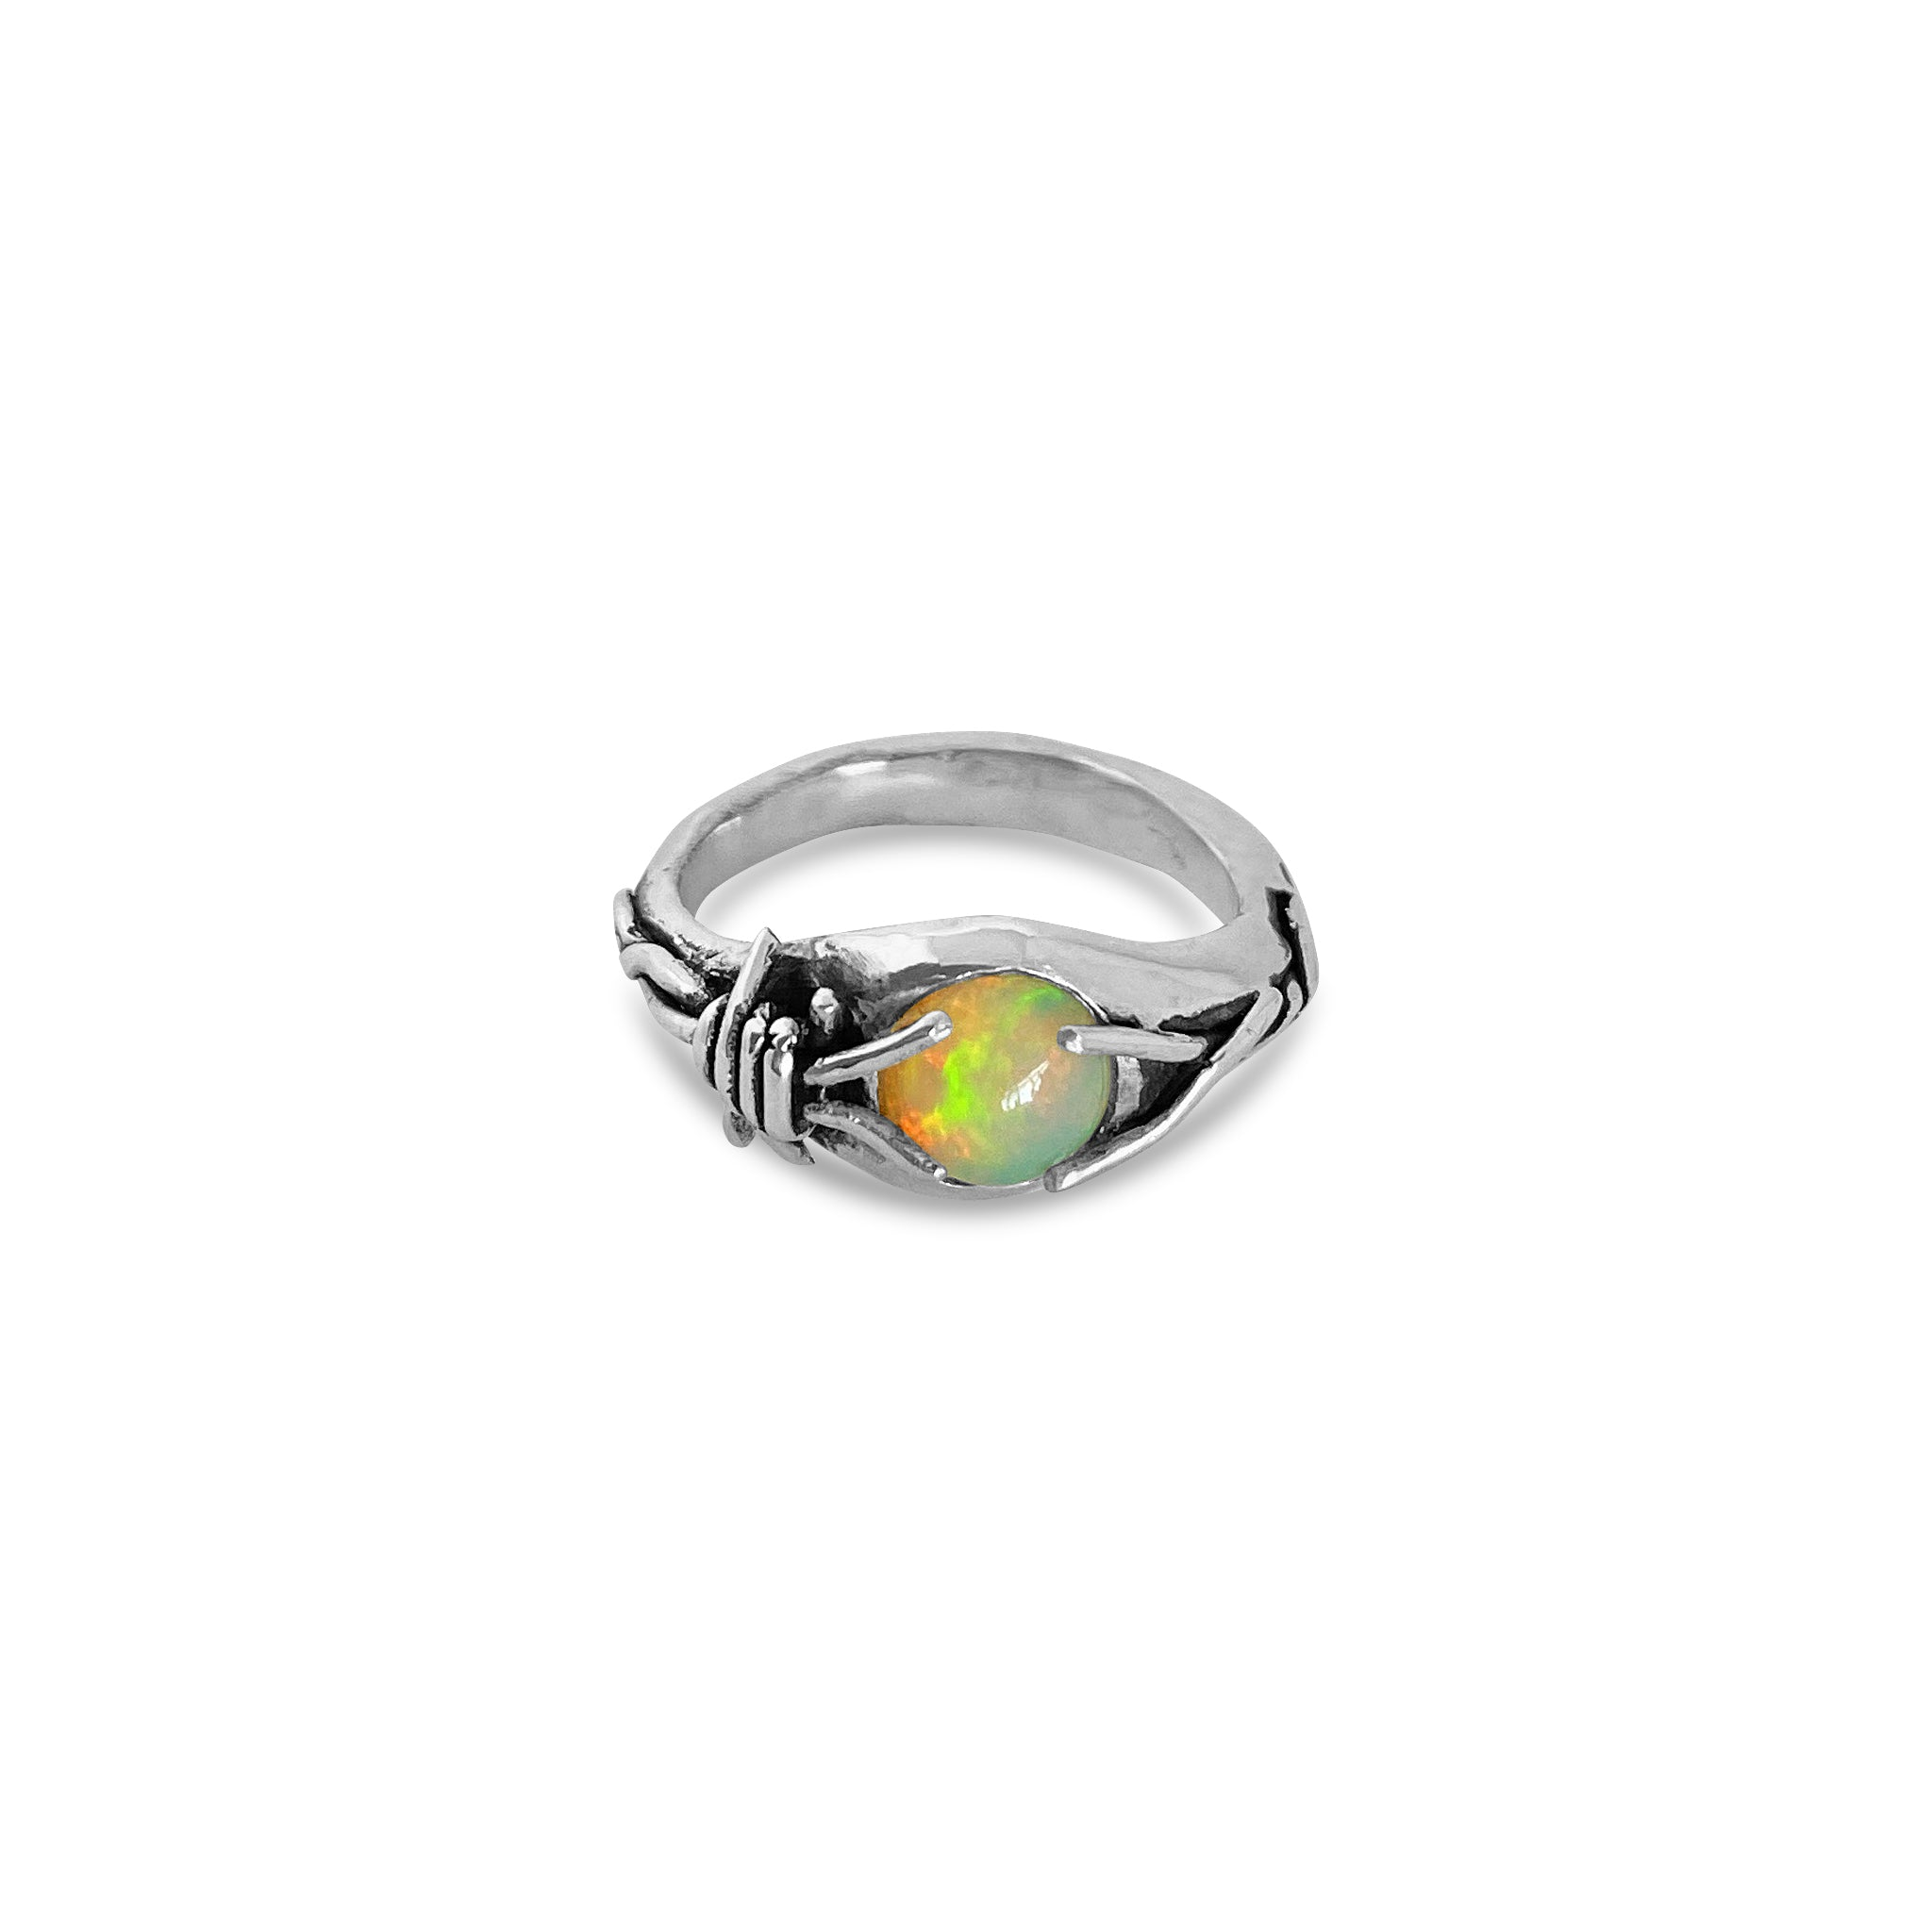 Barbed wire opal US SIZE 8 Aus SIZE Q